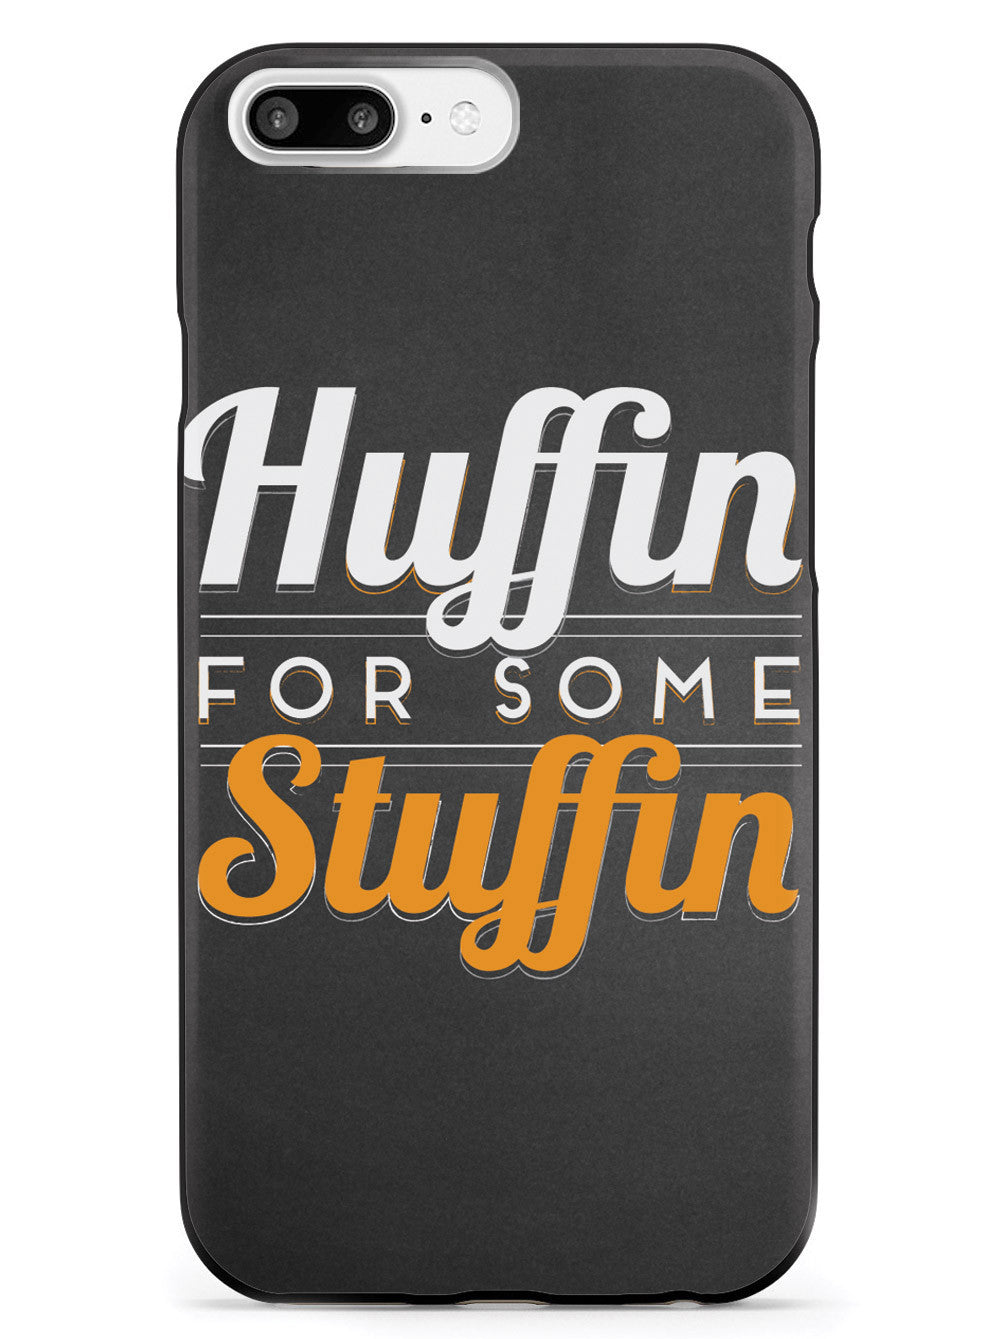 Huffin For Some Stuffin Case